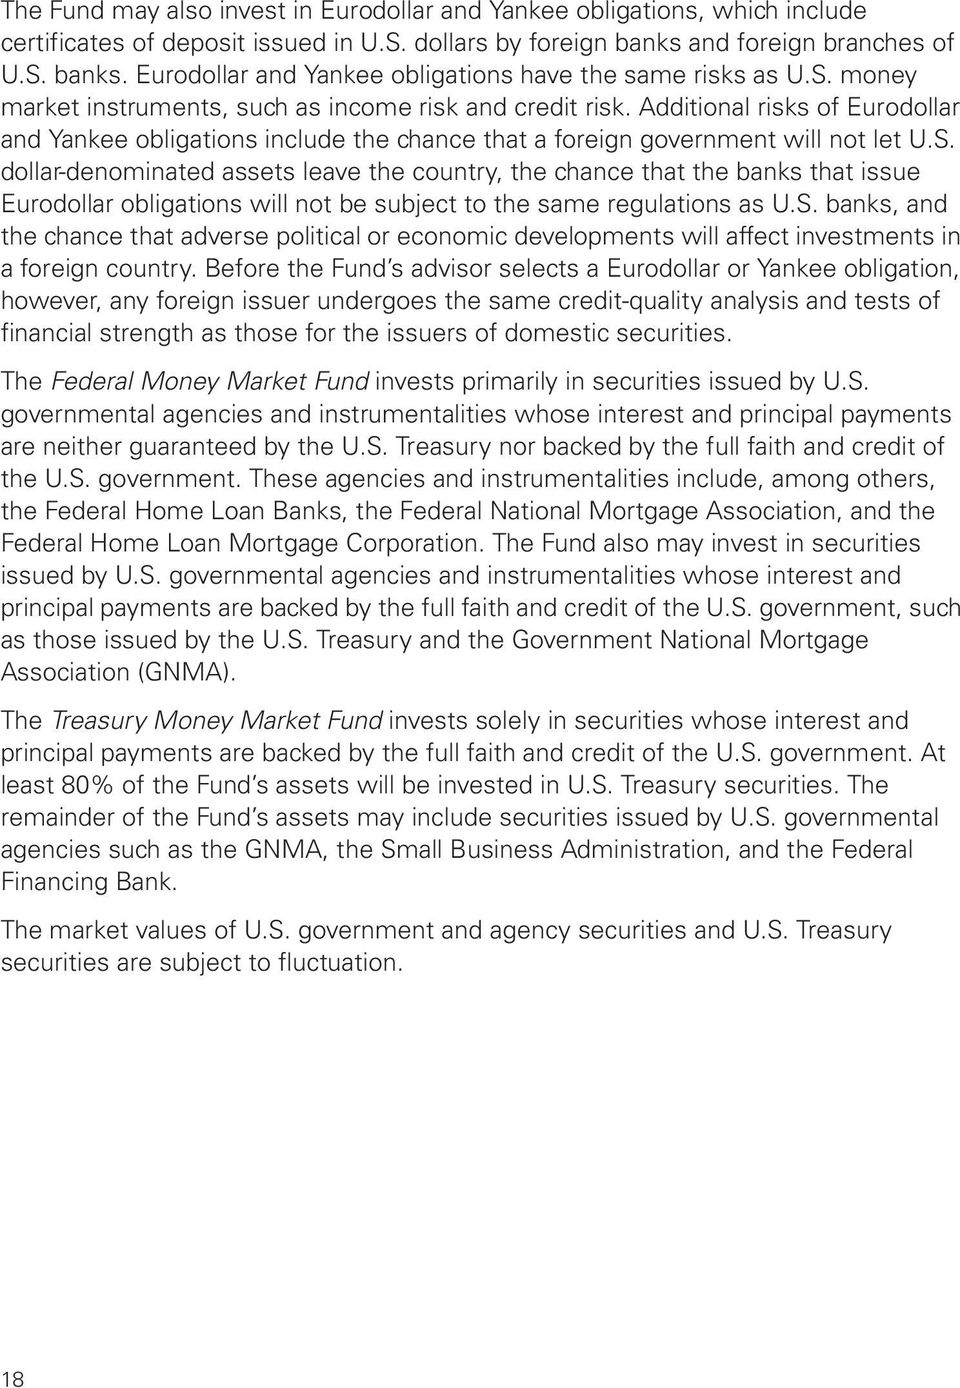 Additional risks of Eurodollar and Yankee obligations include the chance that a foreign government will not let U.S.